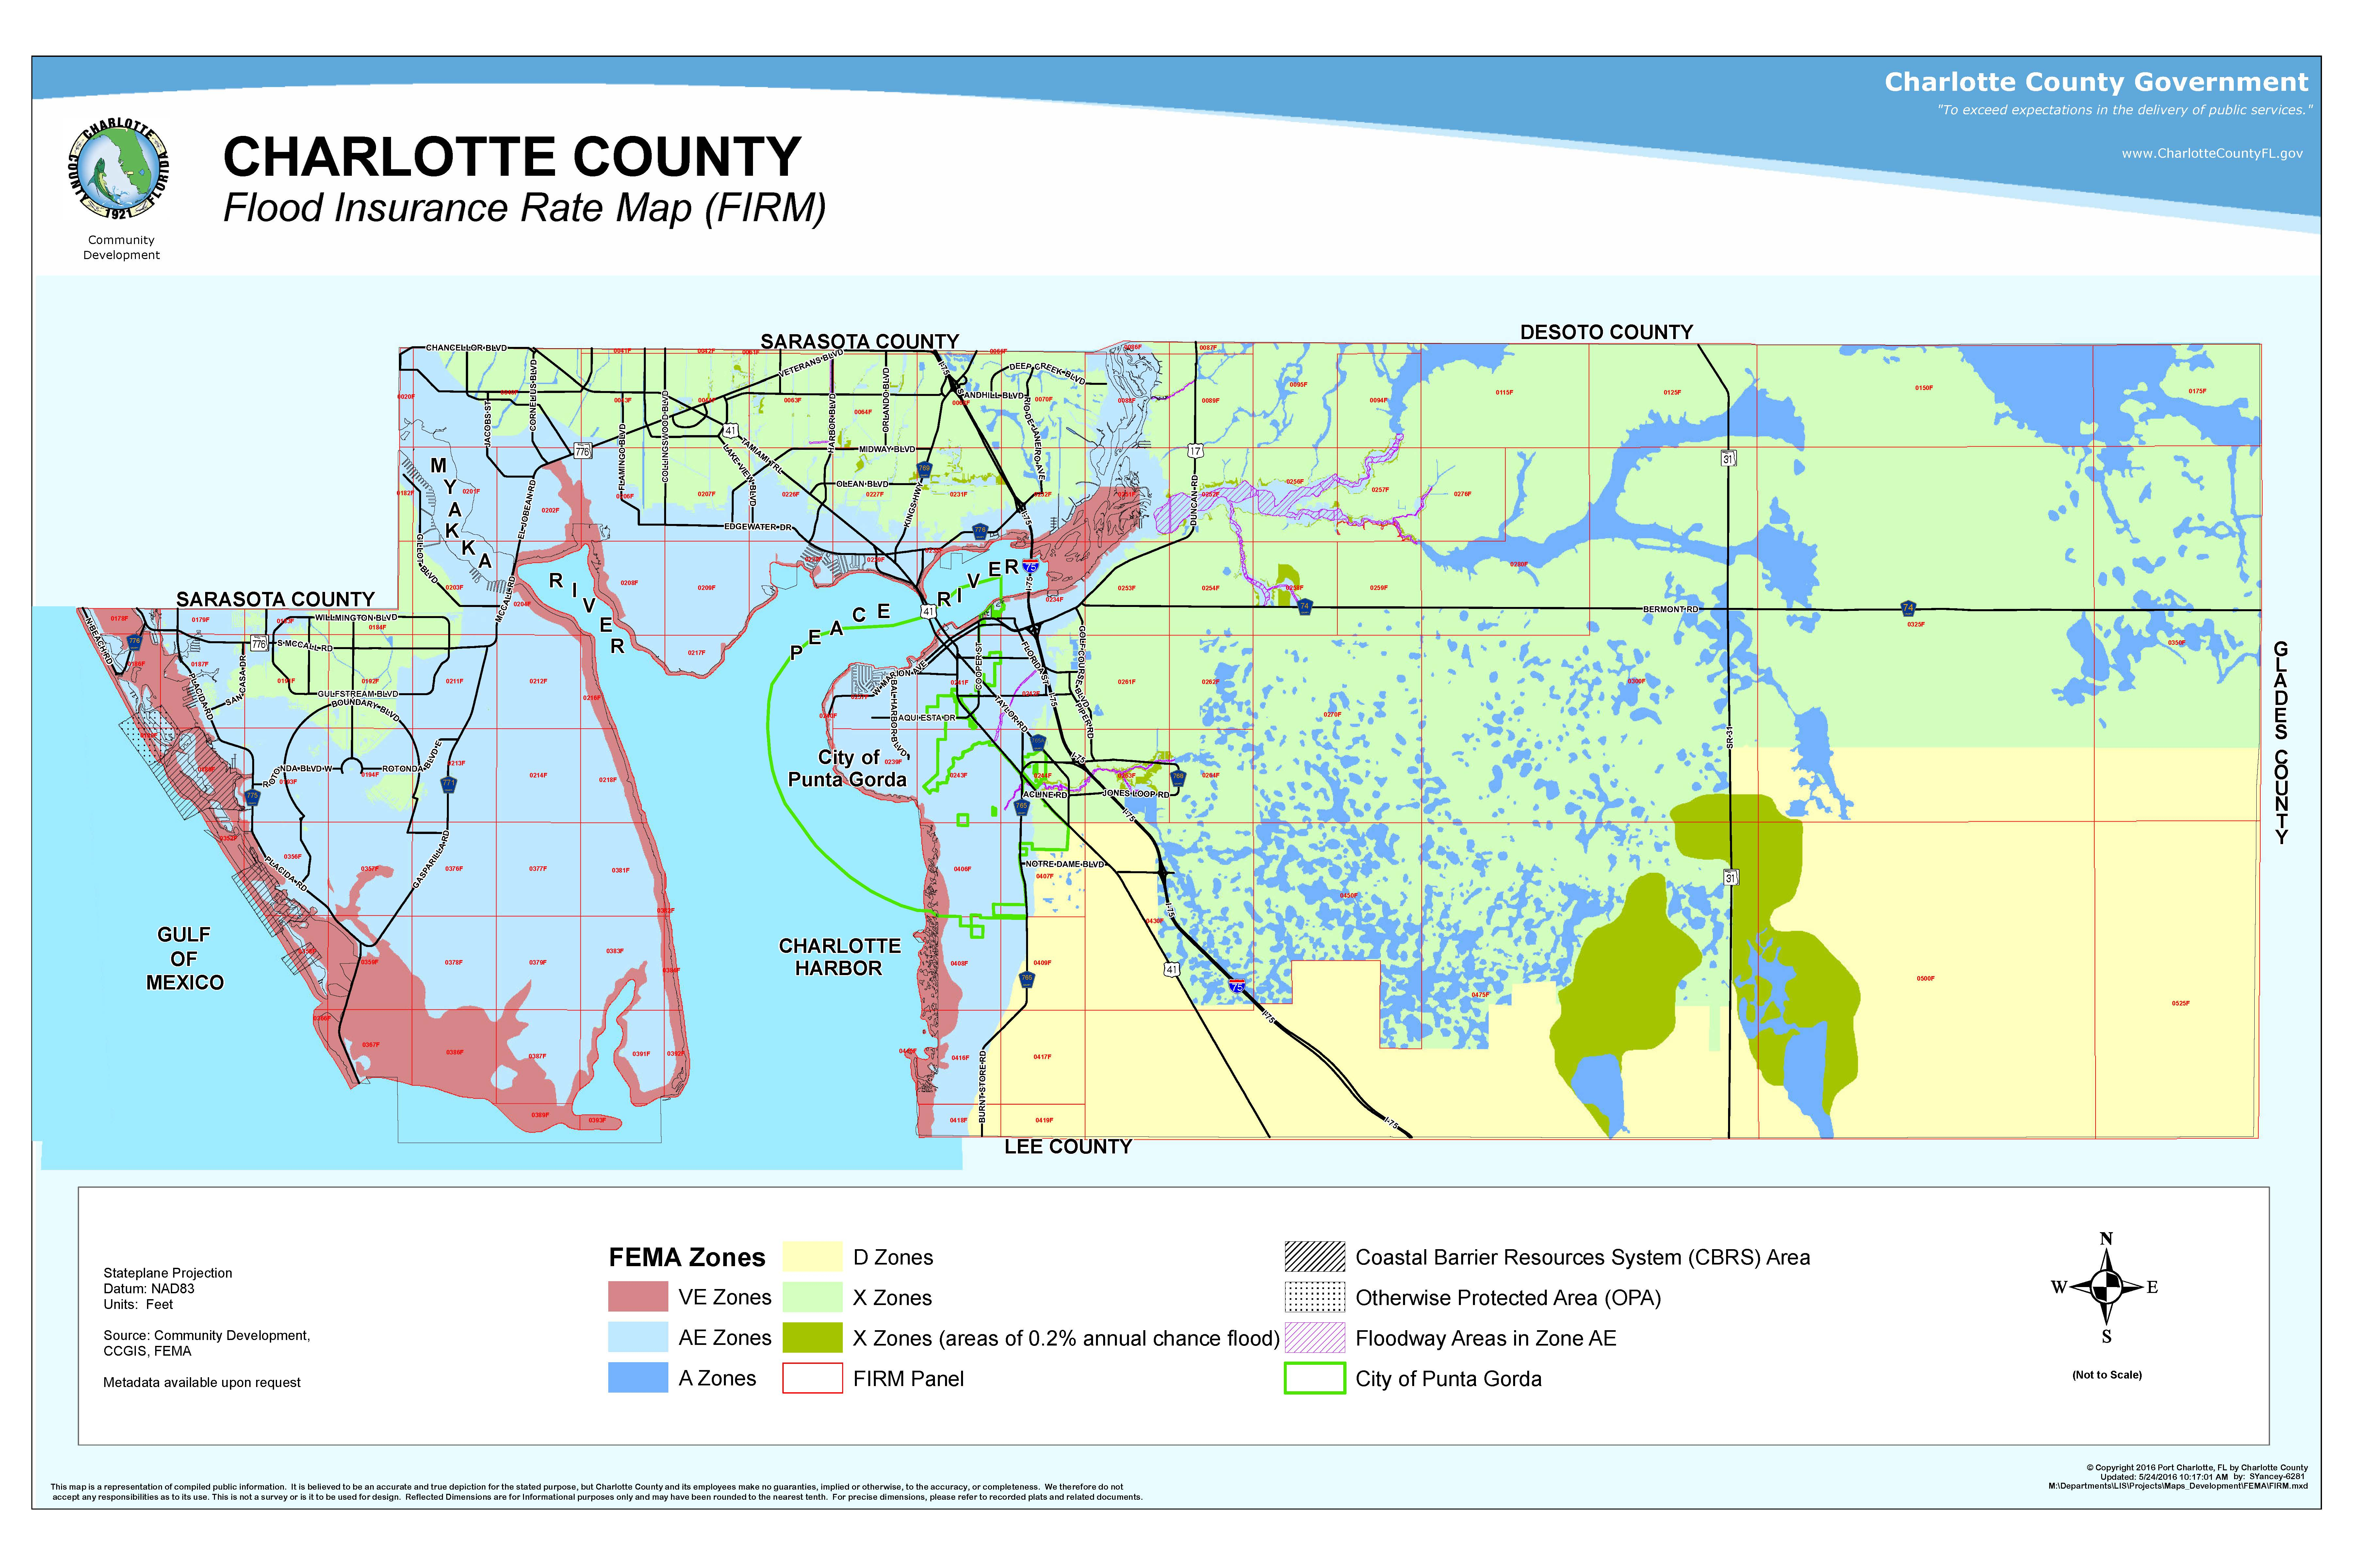 Flood Zone Map Florida Water Country Map - Venice Florida Flood Map